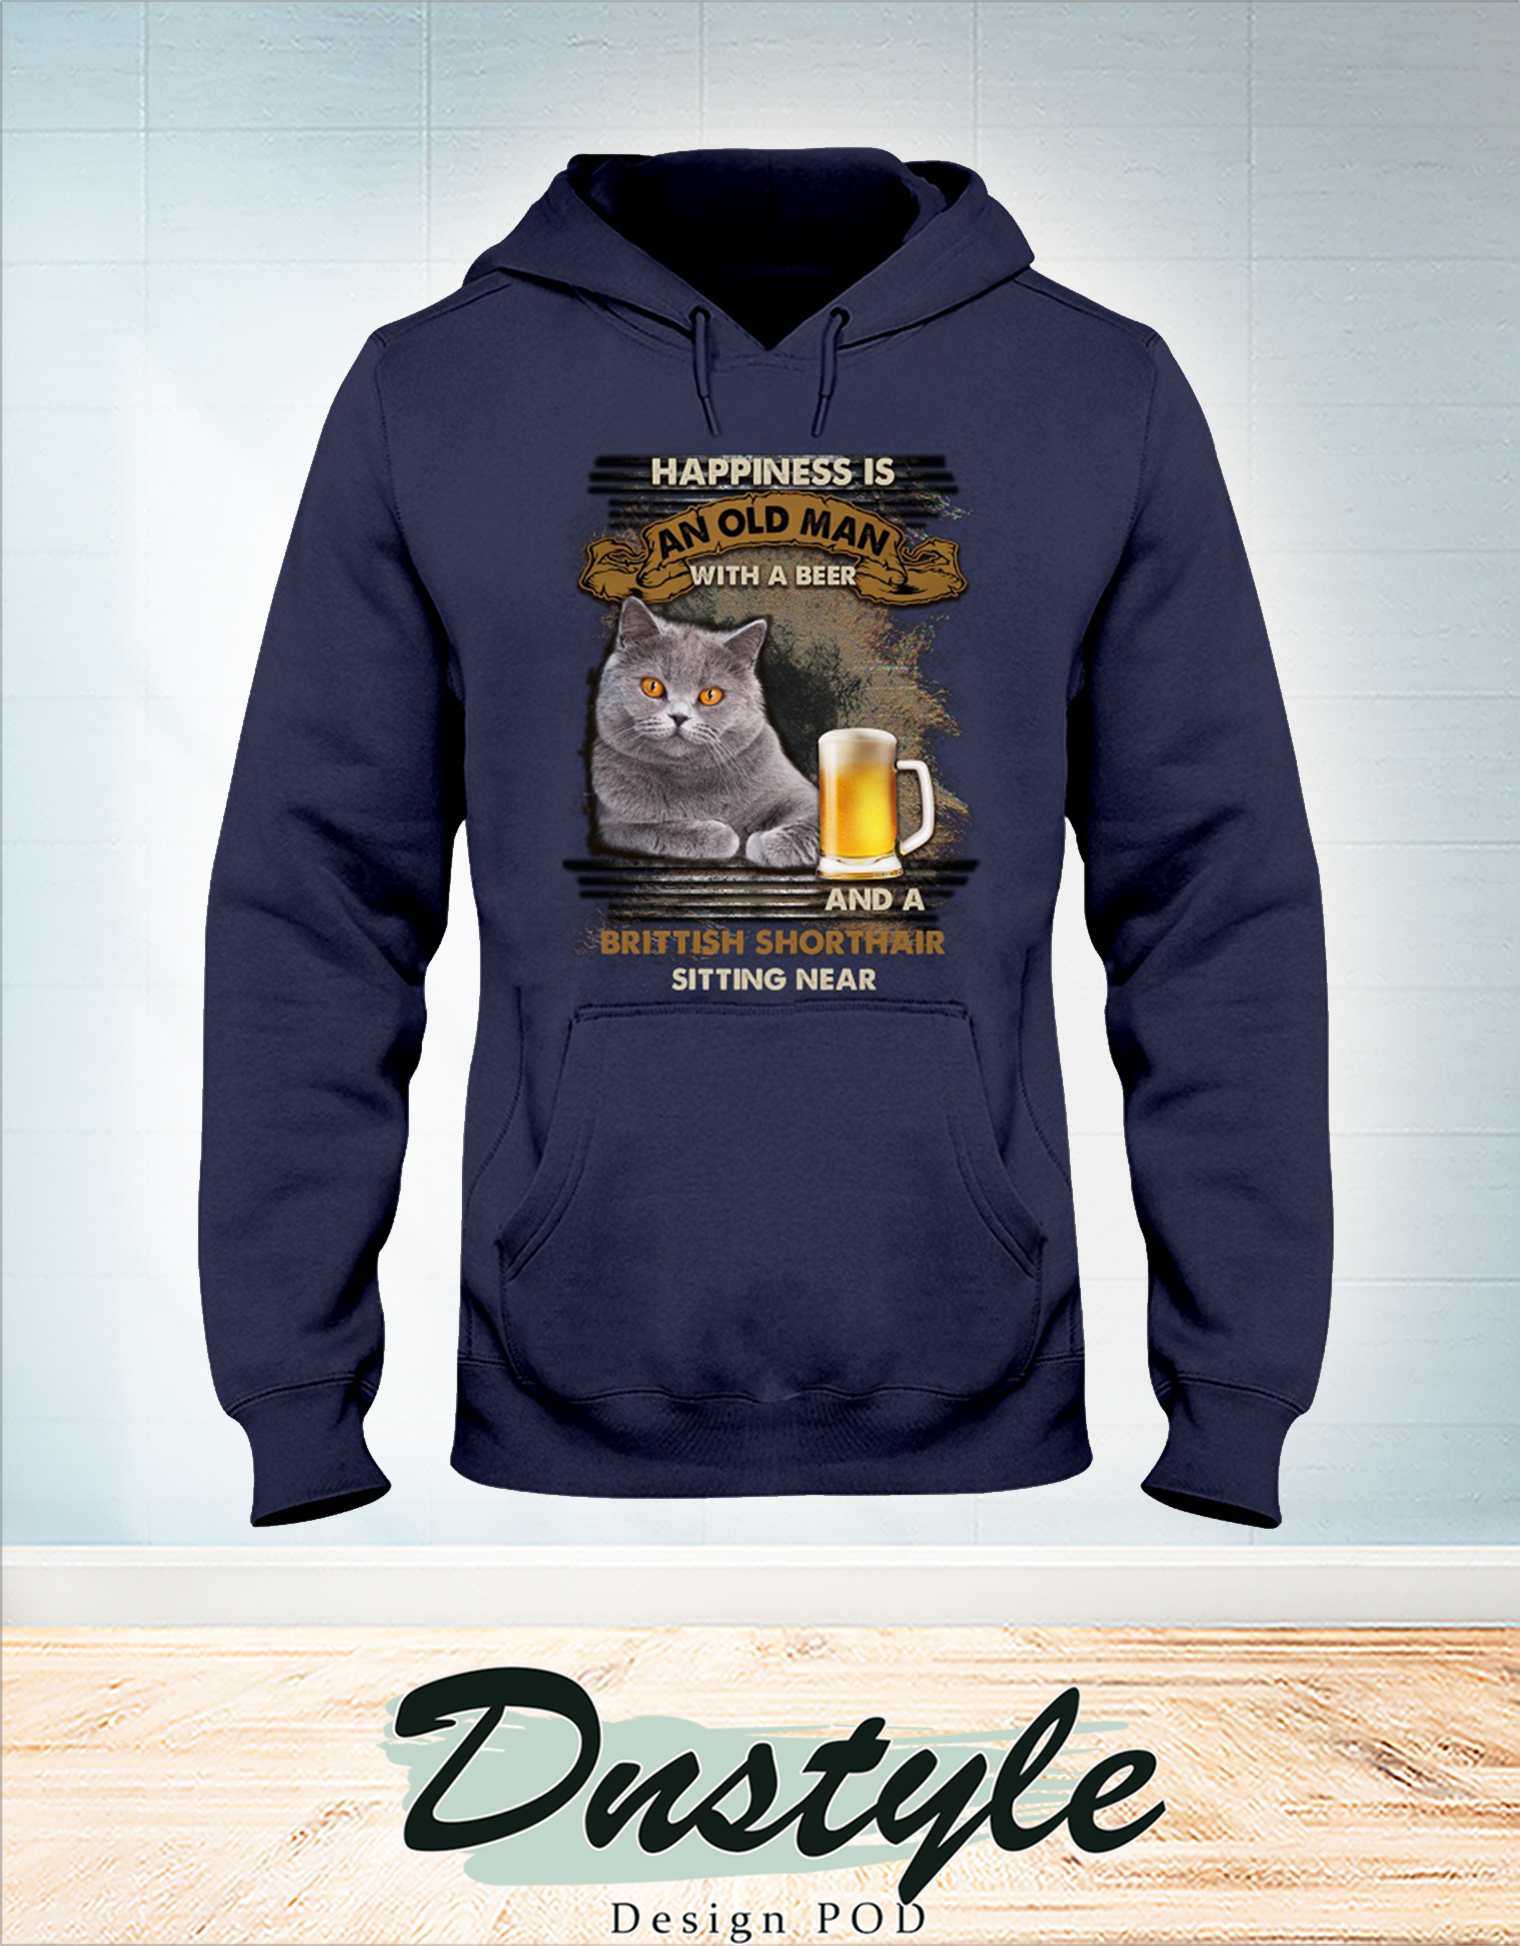 Happiness is an old man with a beer and a Brittish Shorthair sitting near hoodie